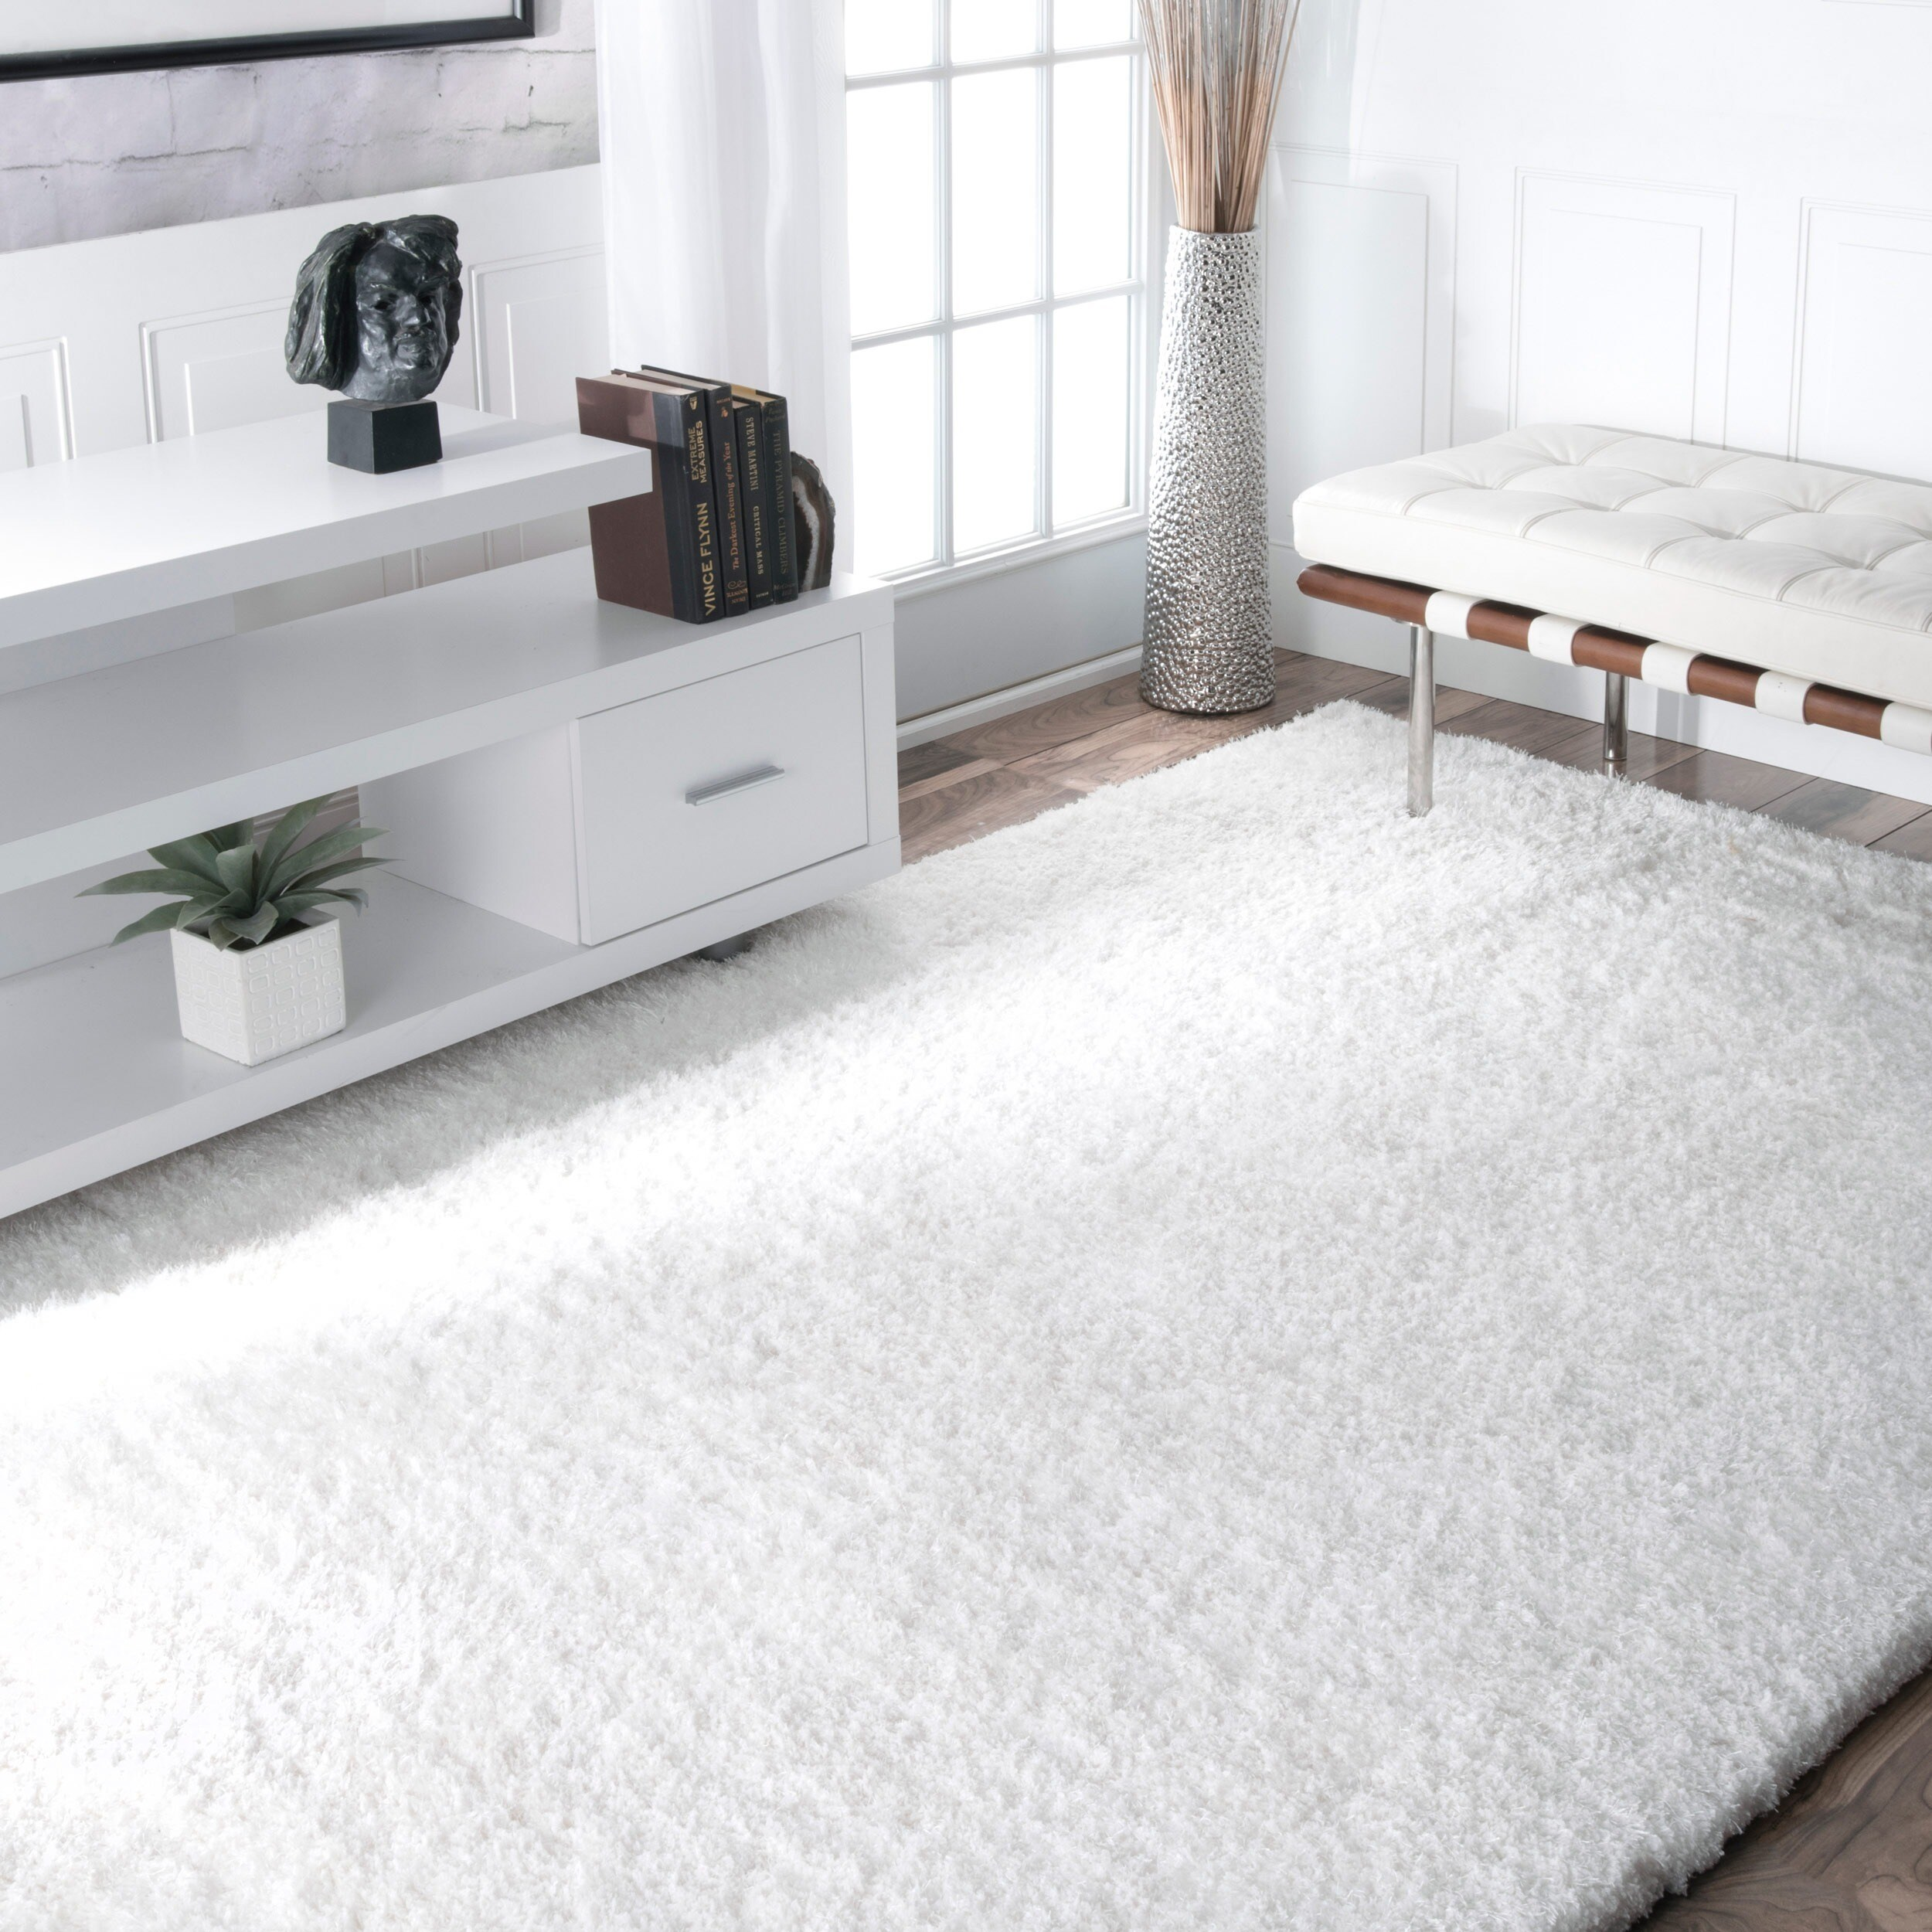 nuLOOM Handmade Soft Plush Shag Rug (5' x 8') at Sears.com